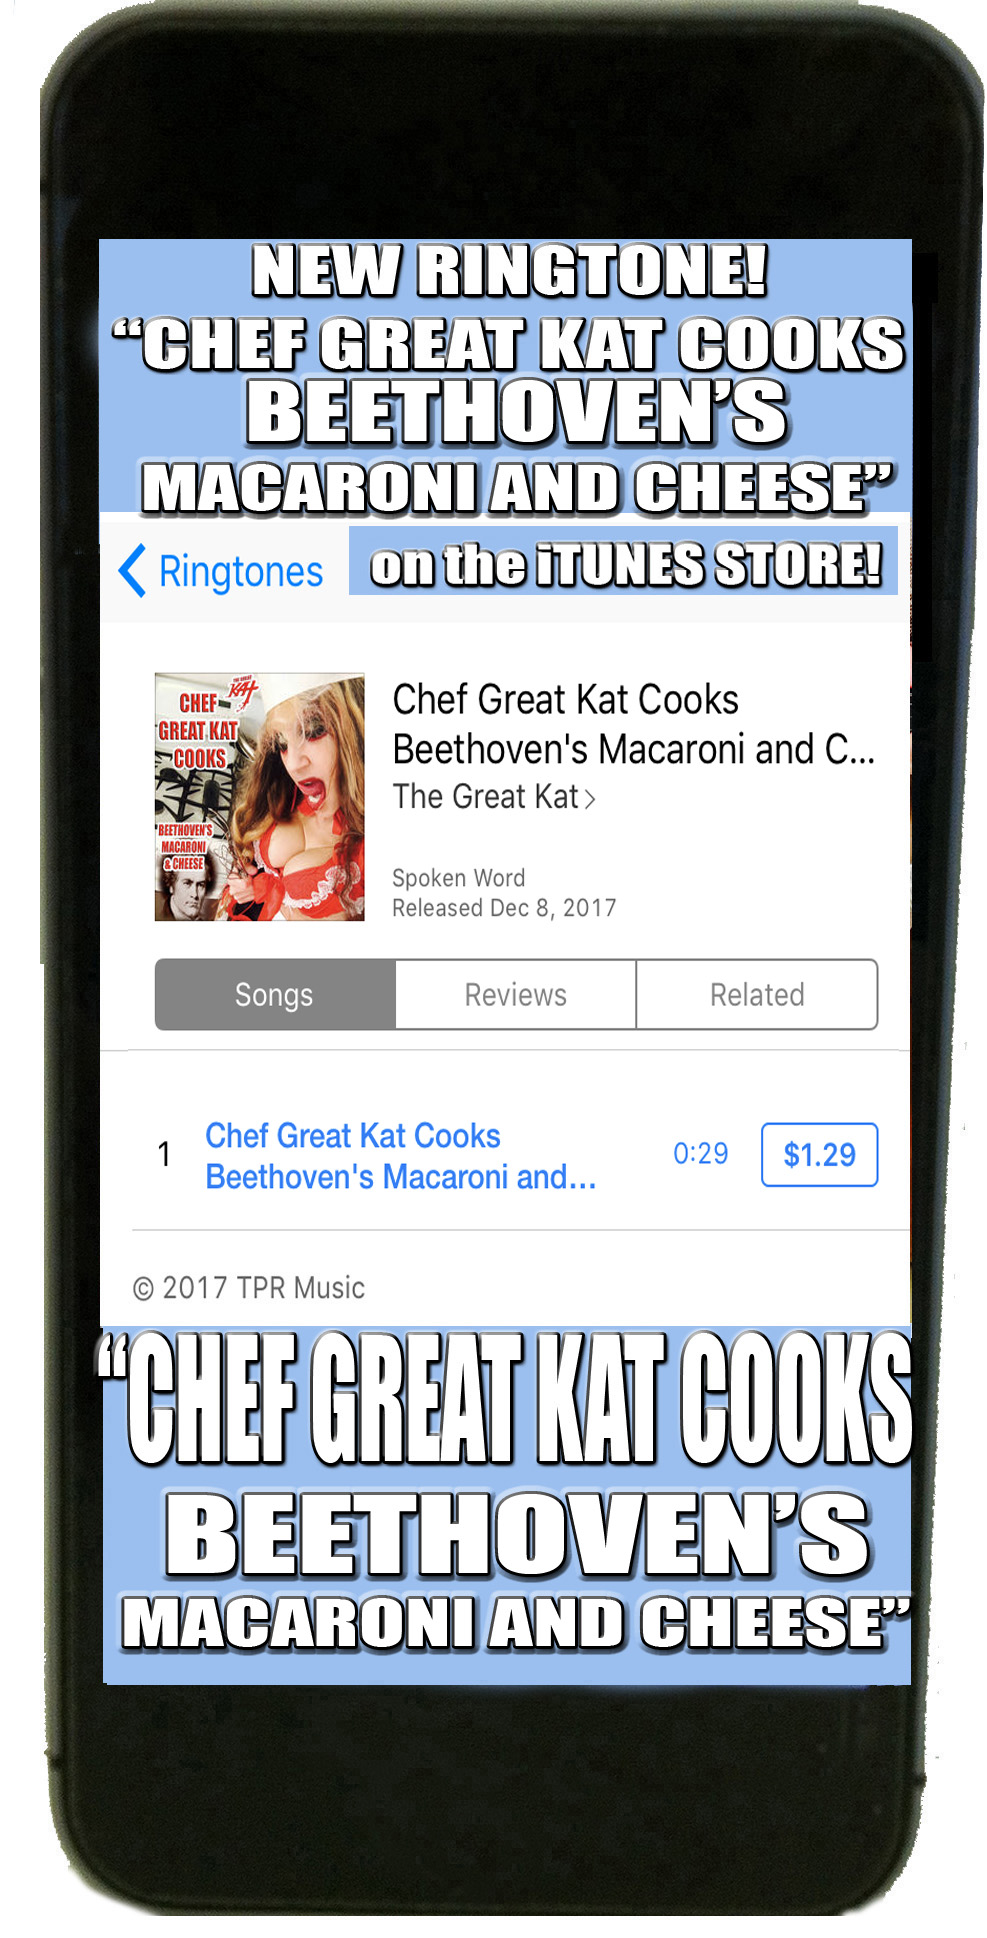 "DIGITAL AUDIO DOWNLOAD & RINGTONE COMING SOON to iTUNES MUSIC, SPOTIFY, AMAZON & MORE: THE GREAT KAT'S NEW ""CHEF GREAT KAT COOKS BEETHOVEN'S MACARONI AND CHEESE""!"